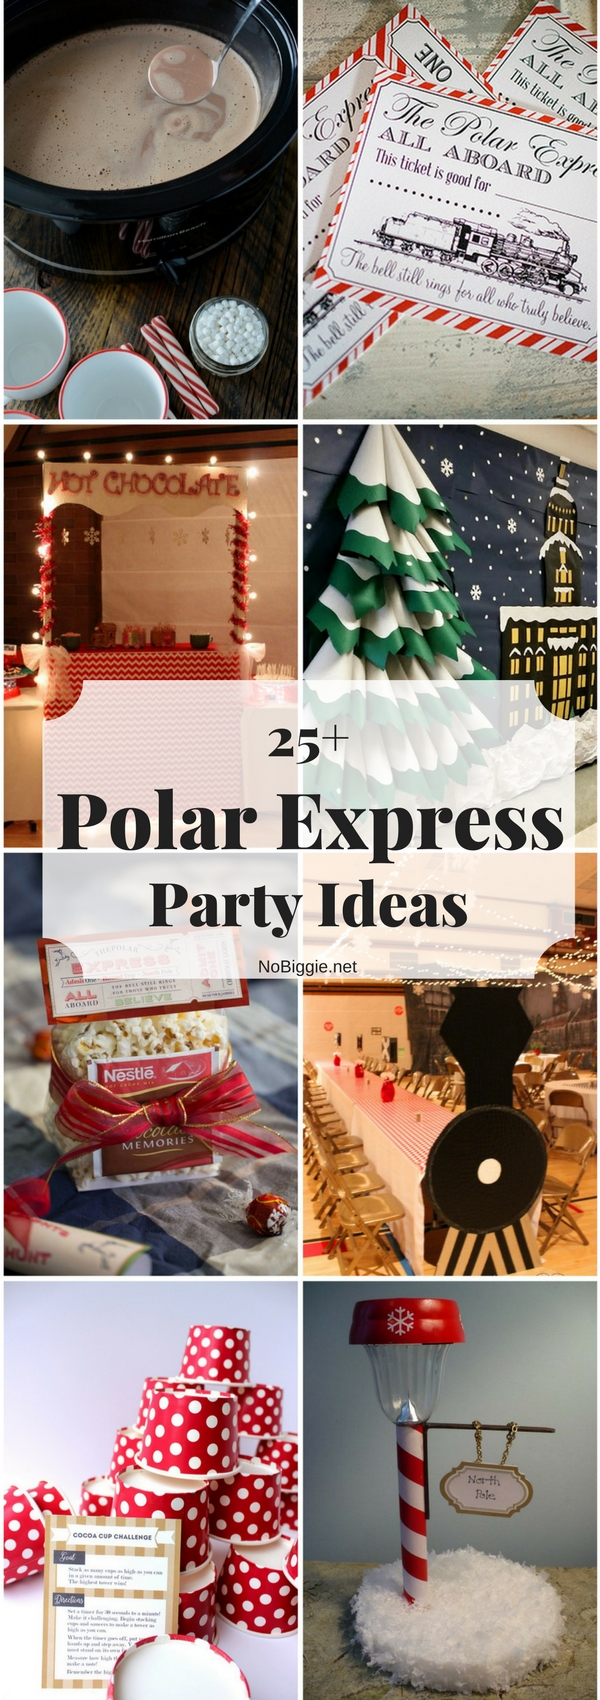 Superb Polar Express Party Ideas For Christmas Part - 4: 25+ Polar Express Party Ideas | NoBiggie.net